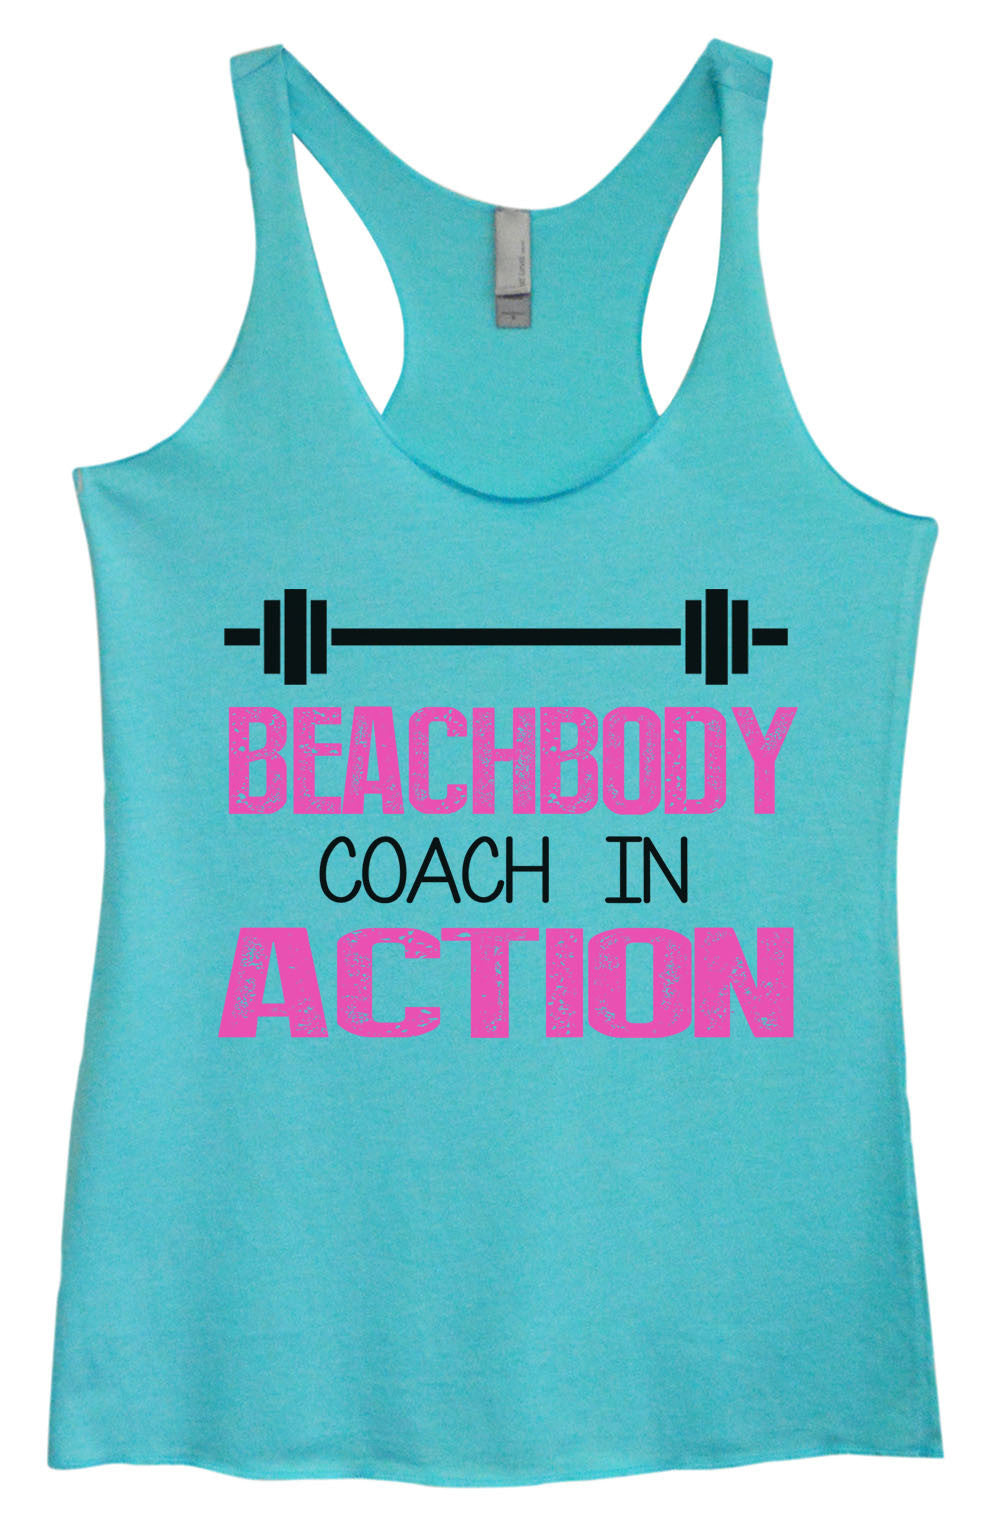 Womens Fashion Triblend Tank Top - Beachbody Coach In Action - Tri-752 - Funny Shirts Tank Tops Burnouts and Triblends  - 2